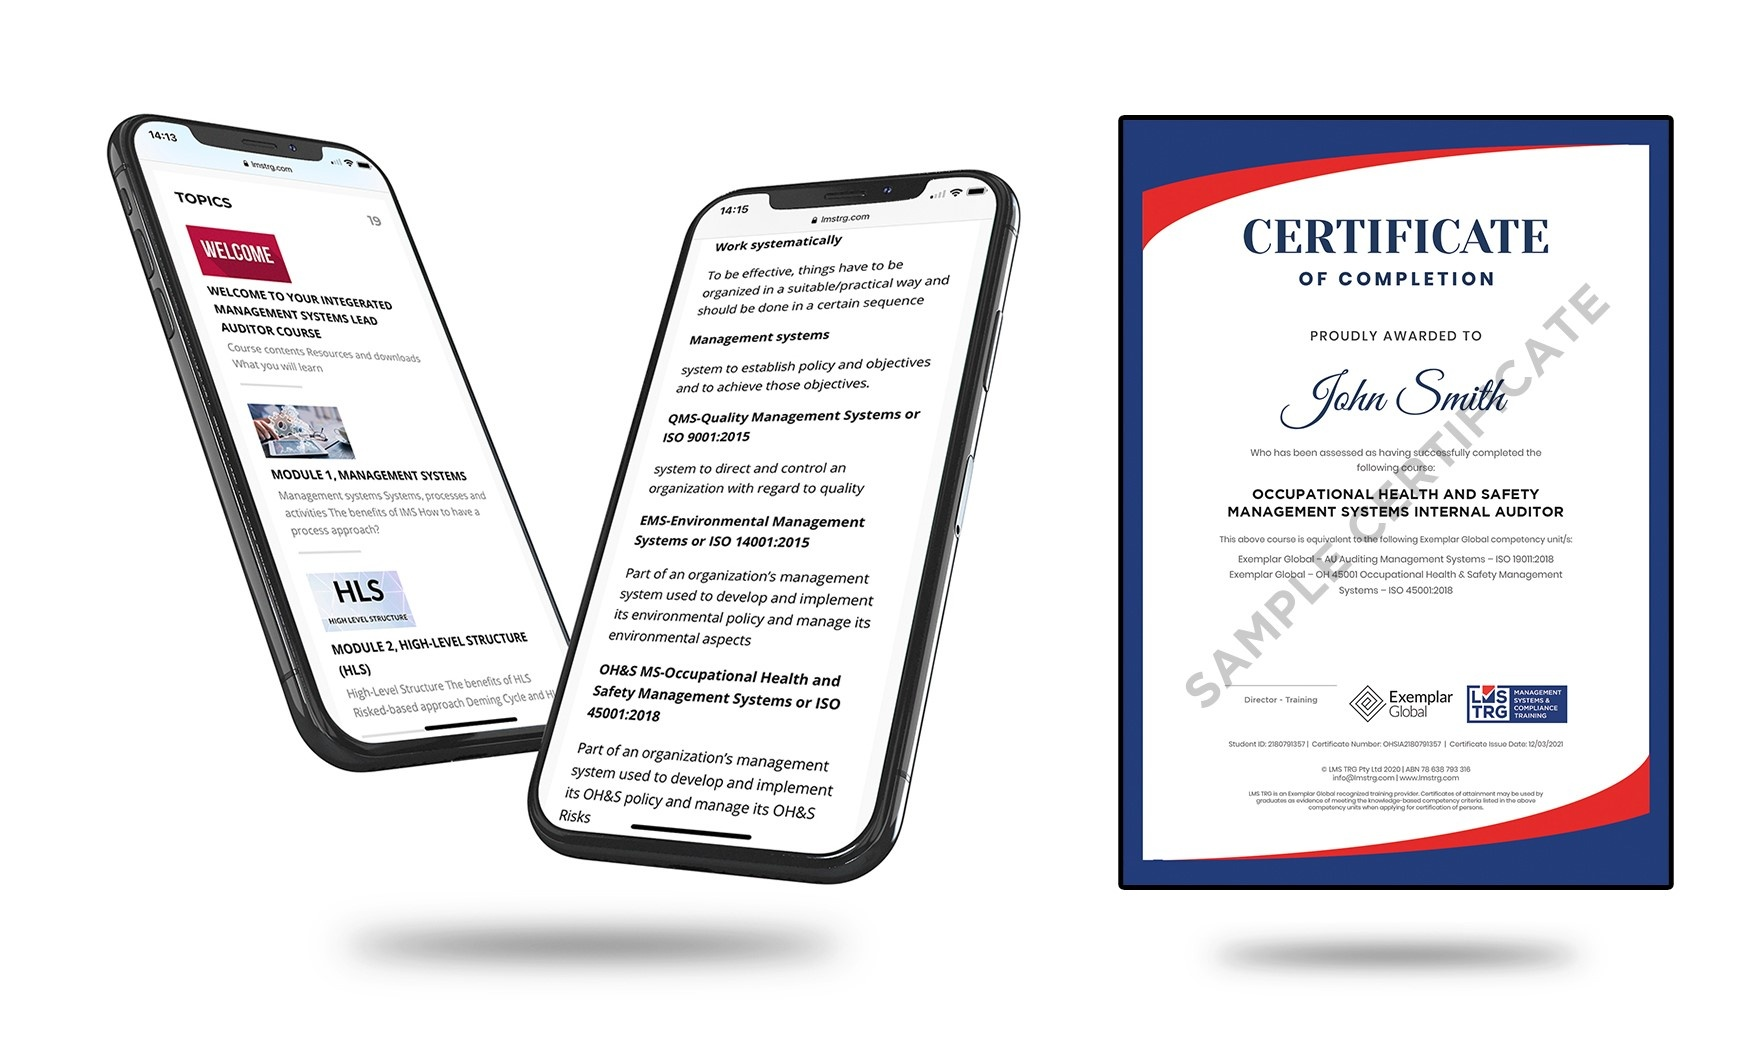 ISO 45001 Occupational Health and Safety Management Systems (OH&S) Internal Auditor ISO Certificate